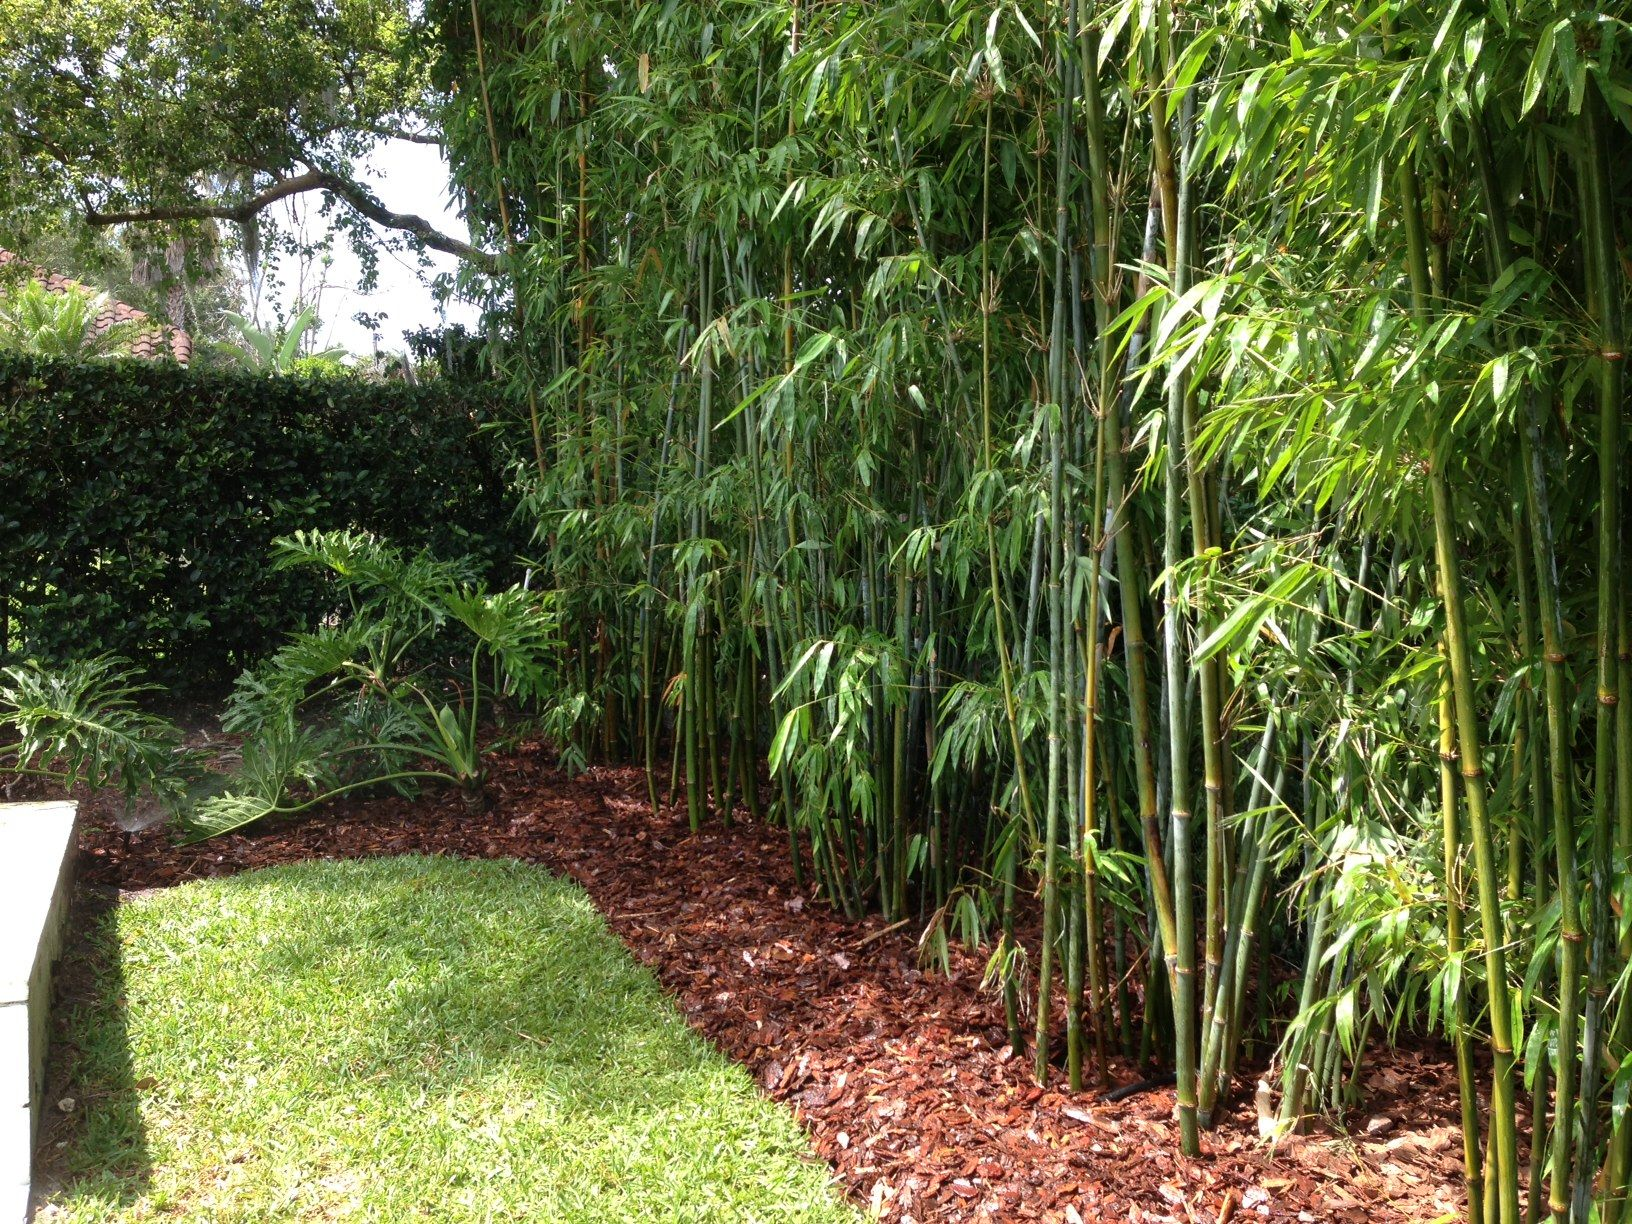 landscape design bamboo irrigation design blg On landscaping bamboo plants